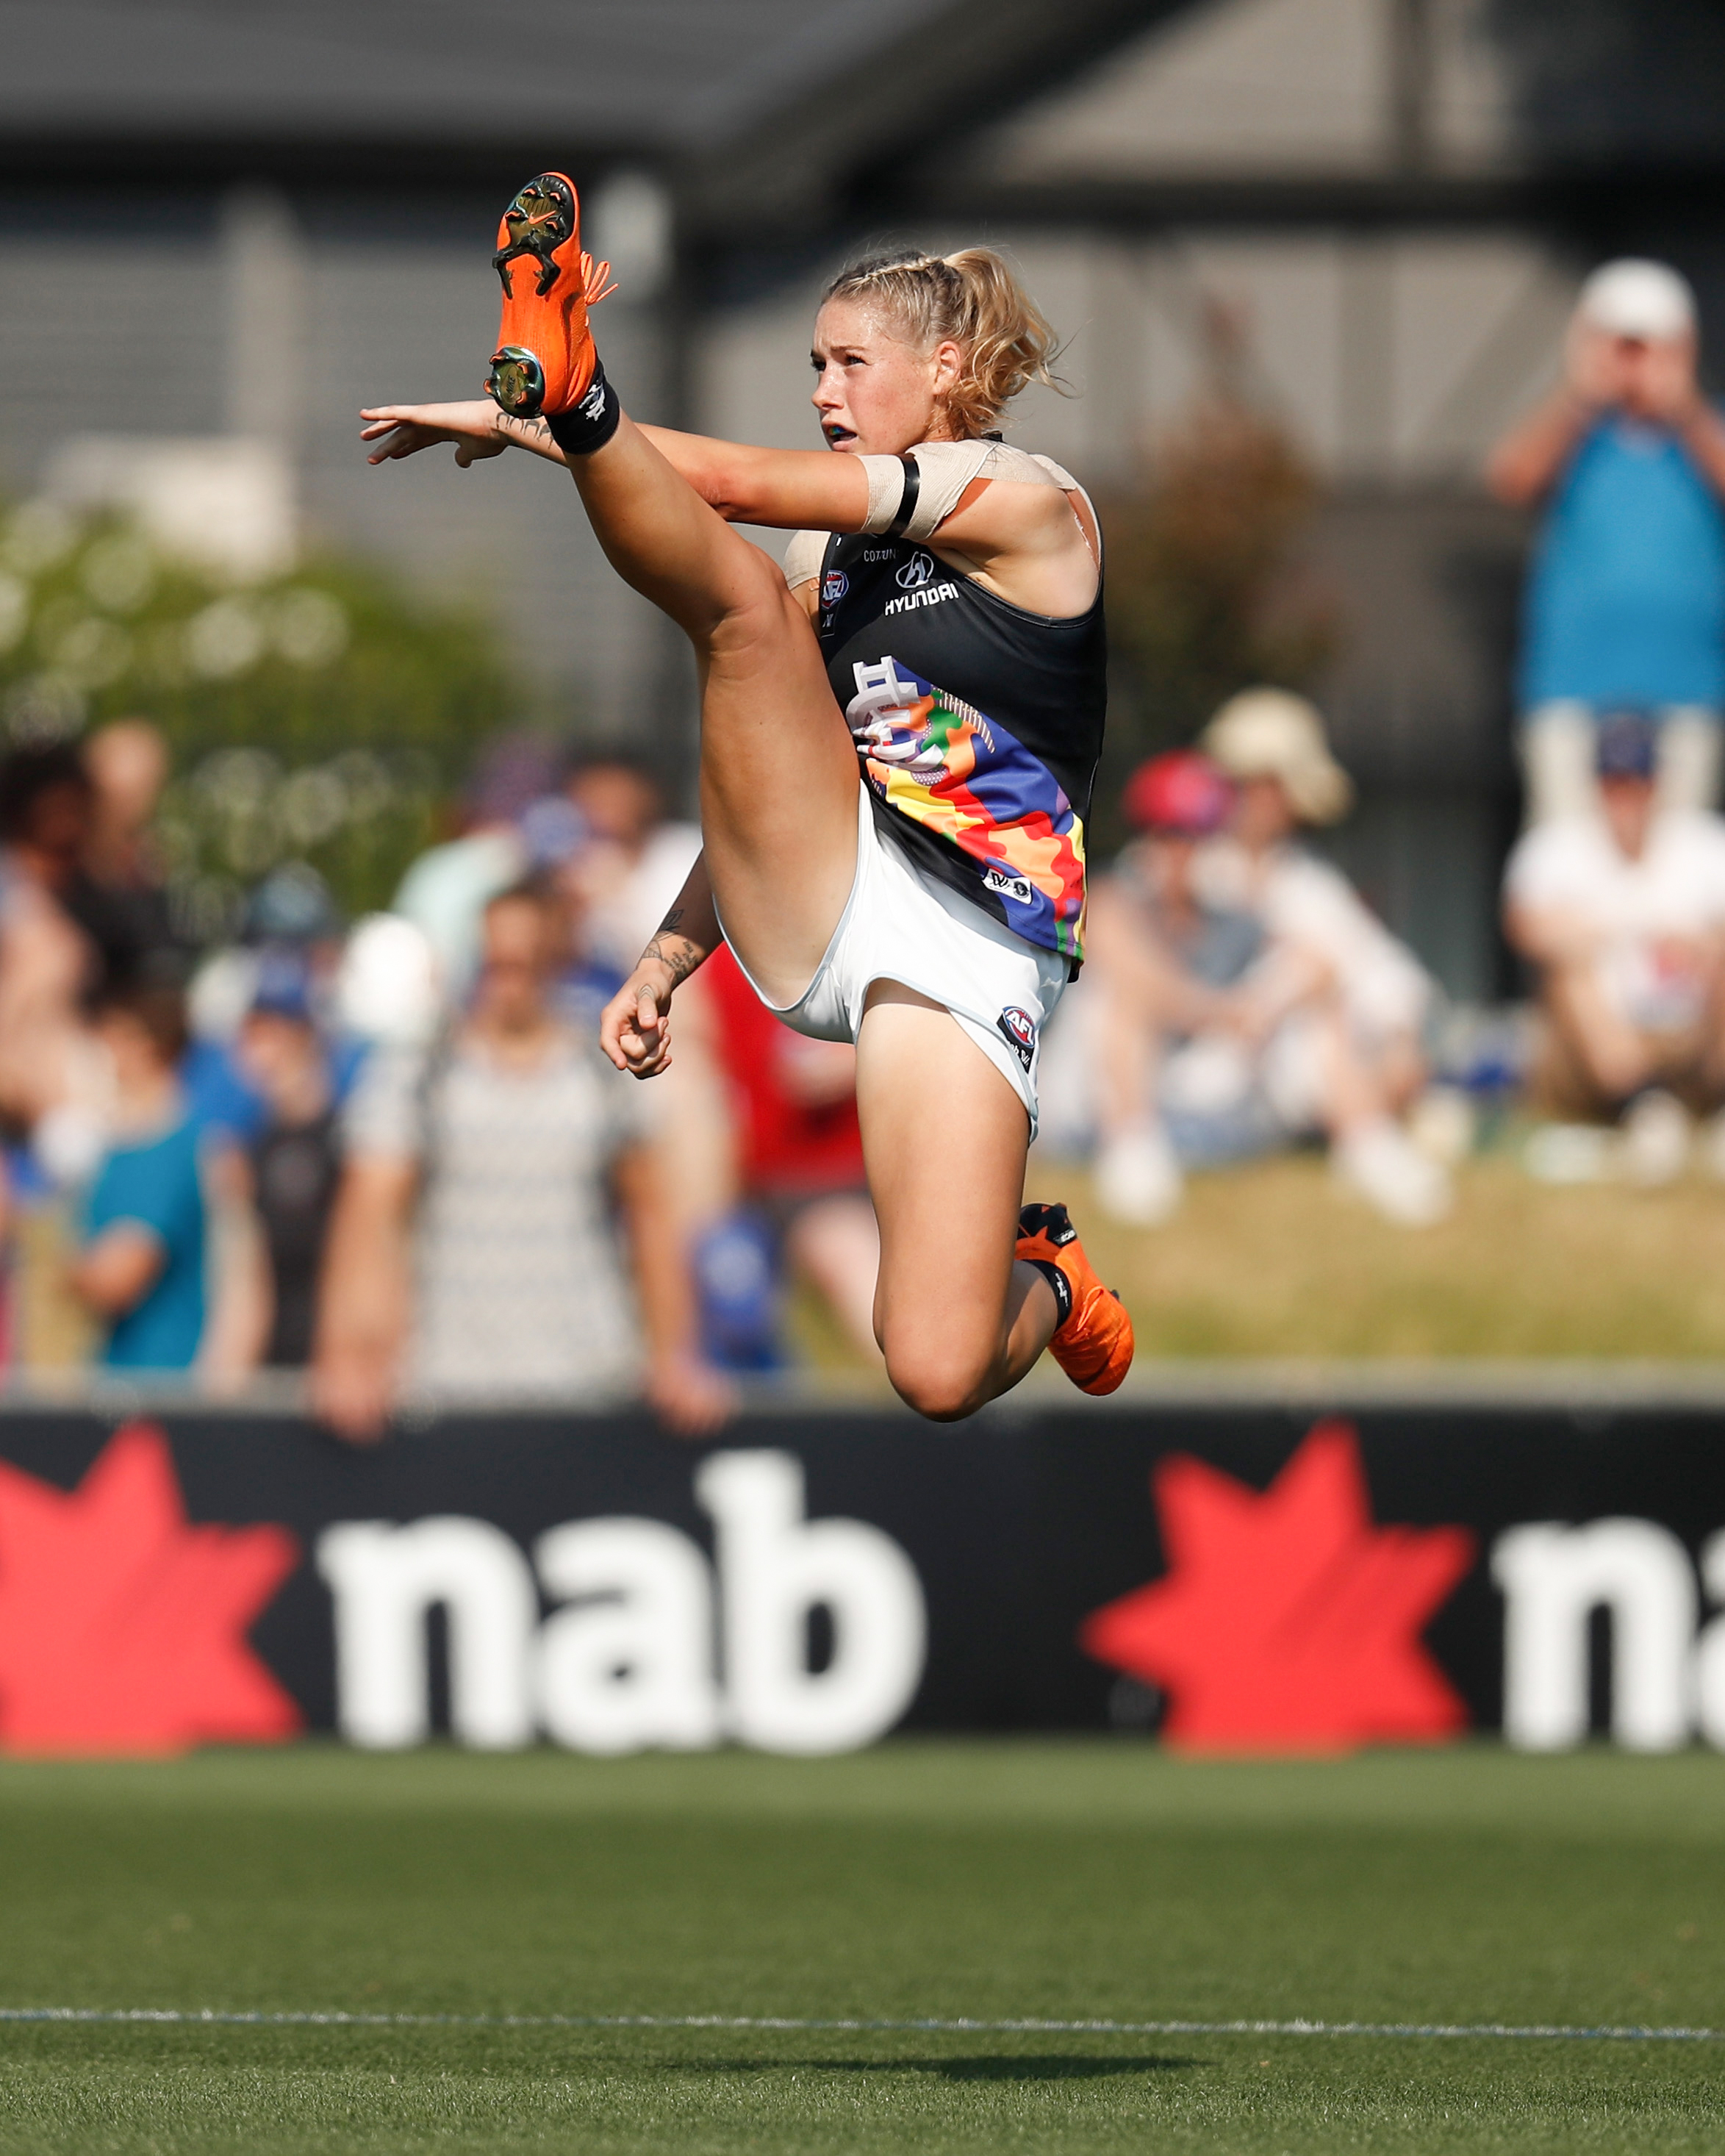 Michael Willson  'The Kick' Tayla Harris, VIC AFLW